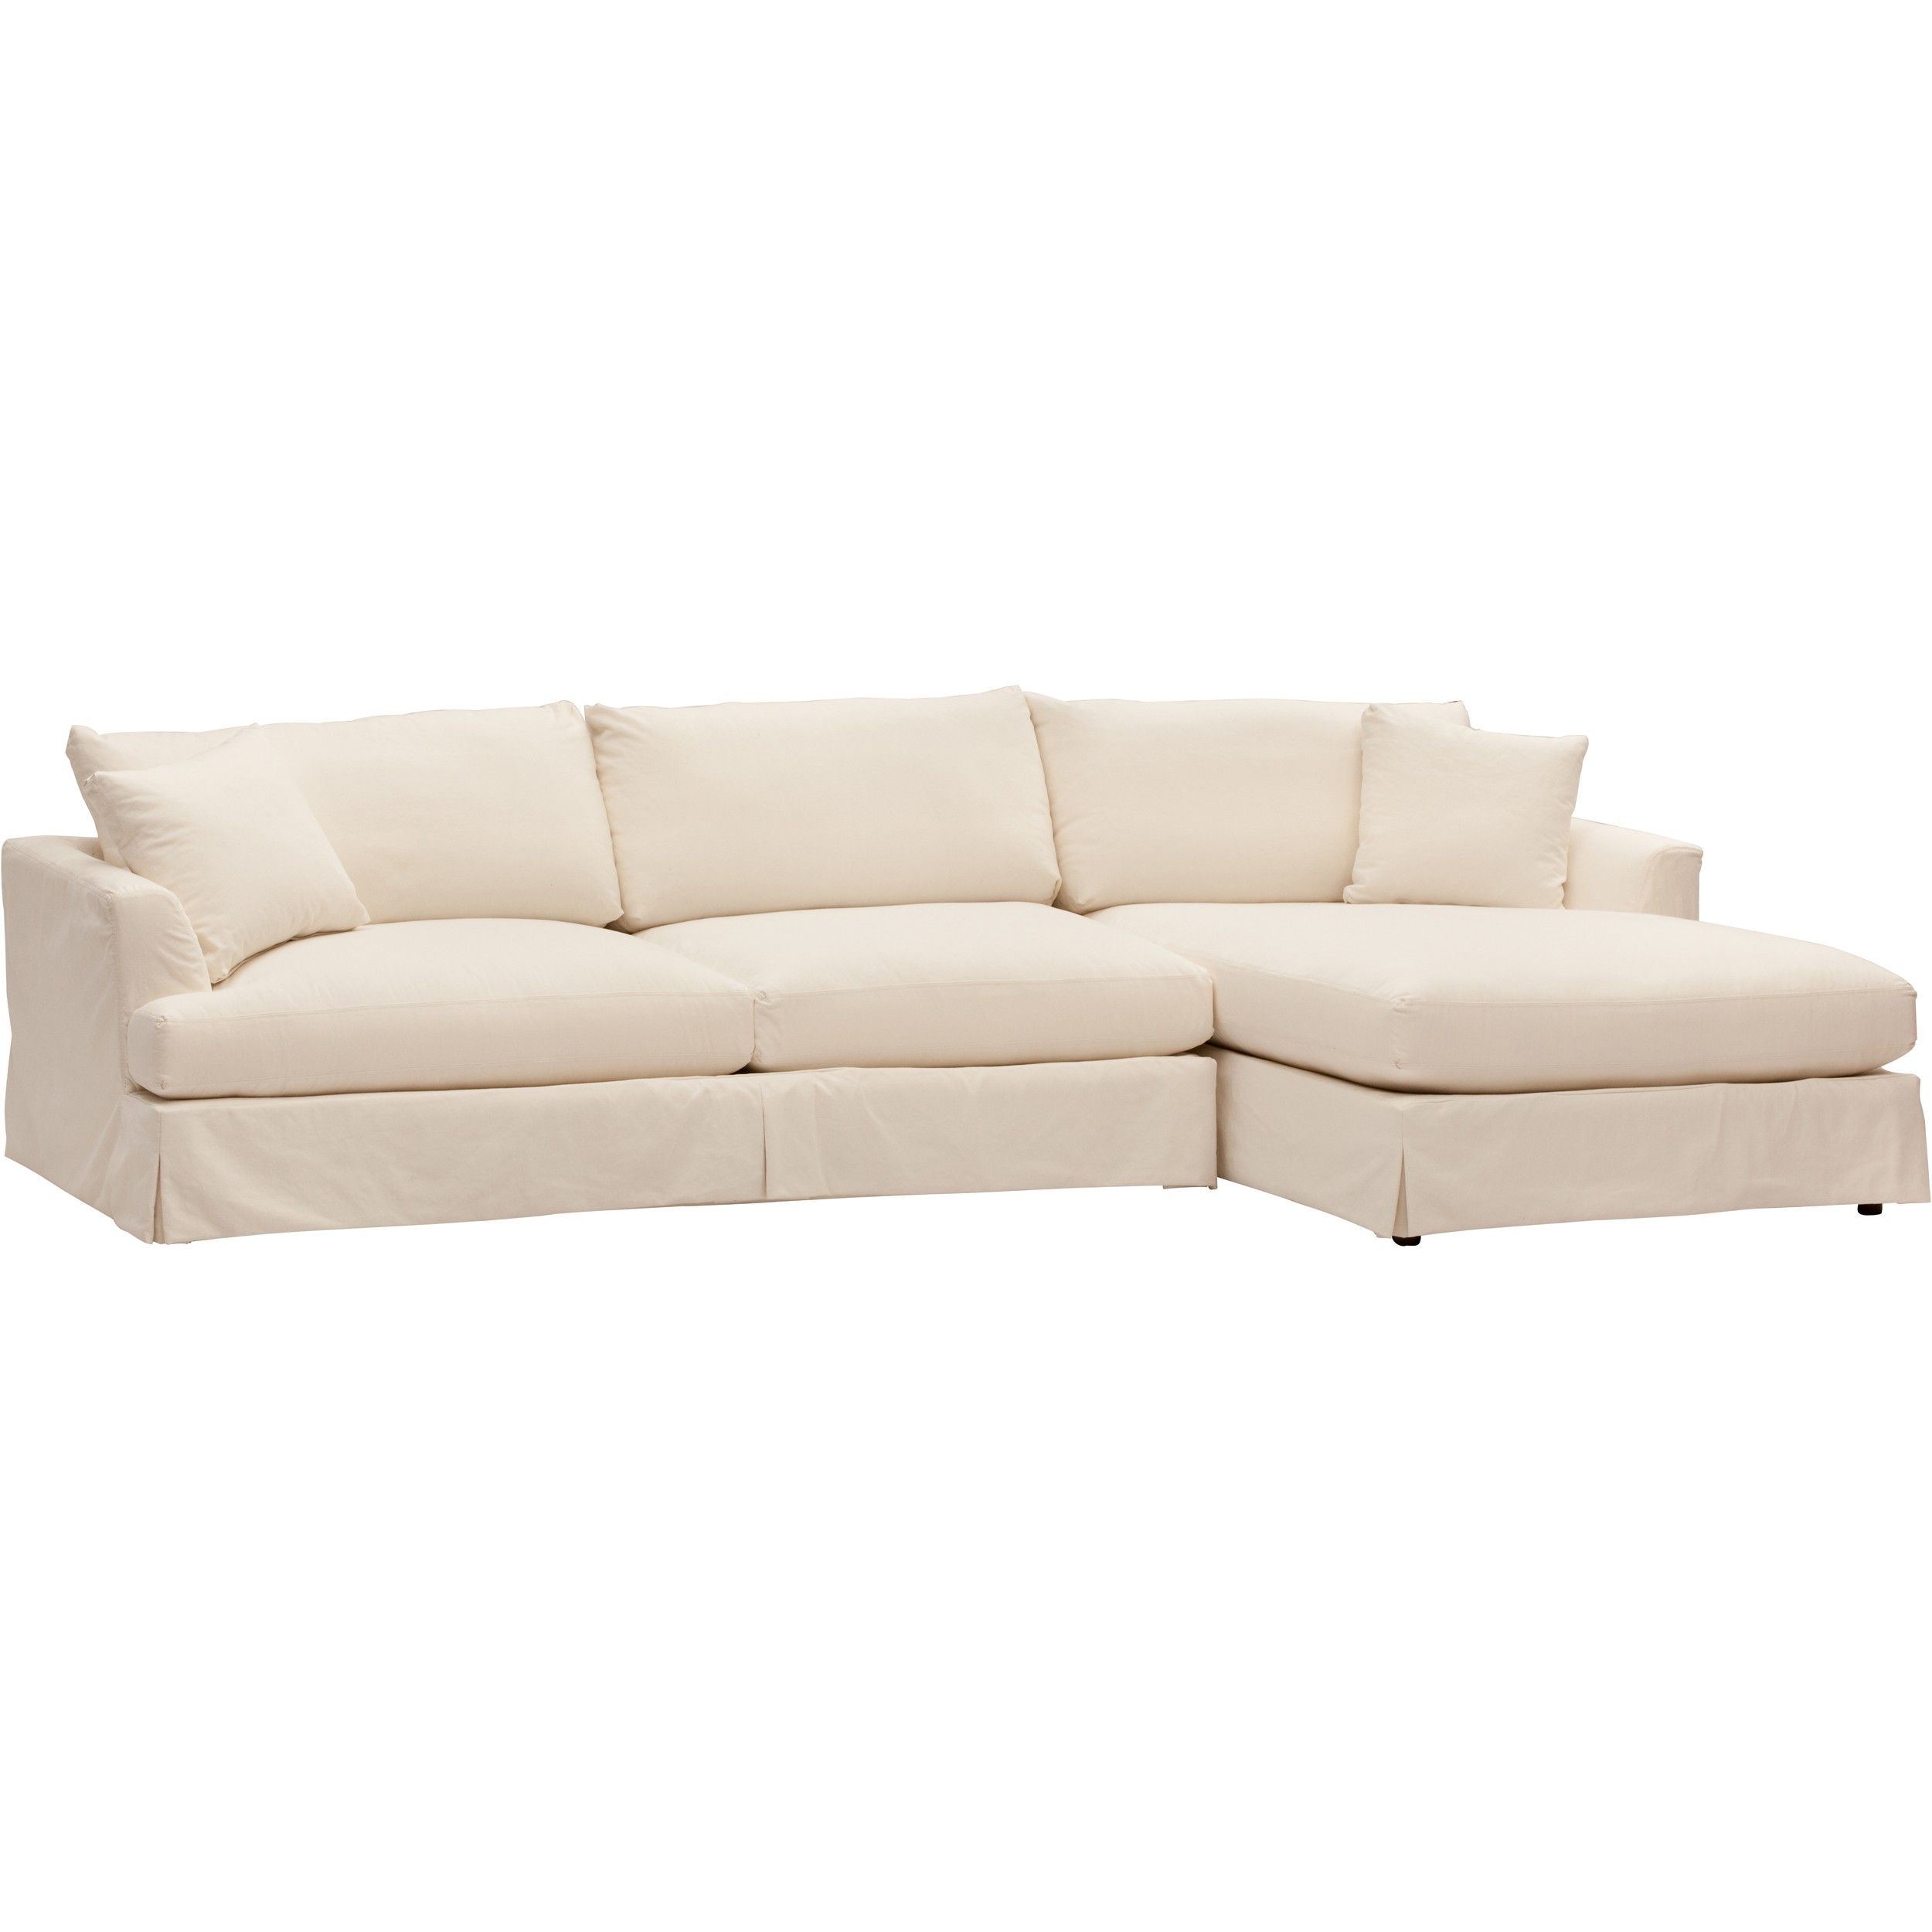 Andre Slipcover Sectional, Deso Snow | Future Projects ...